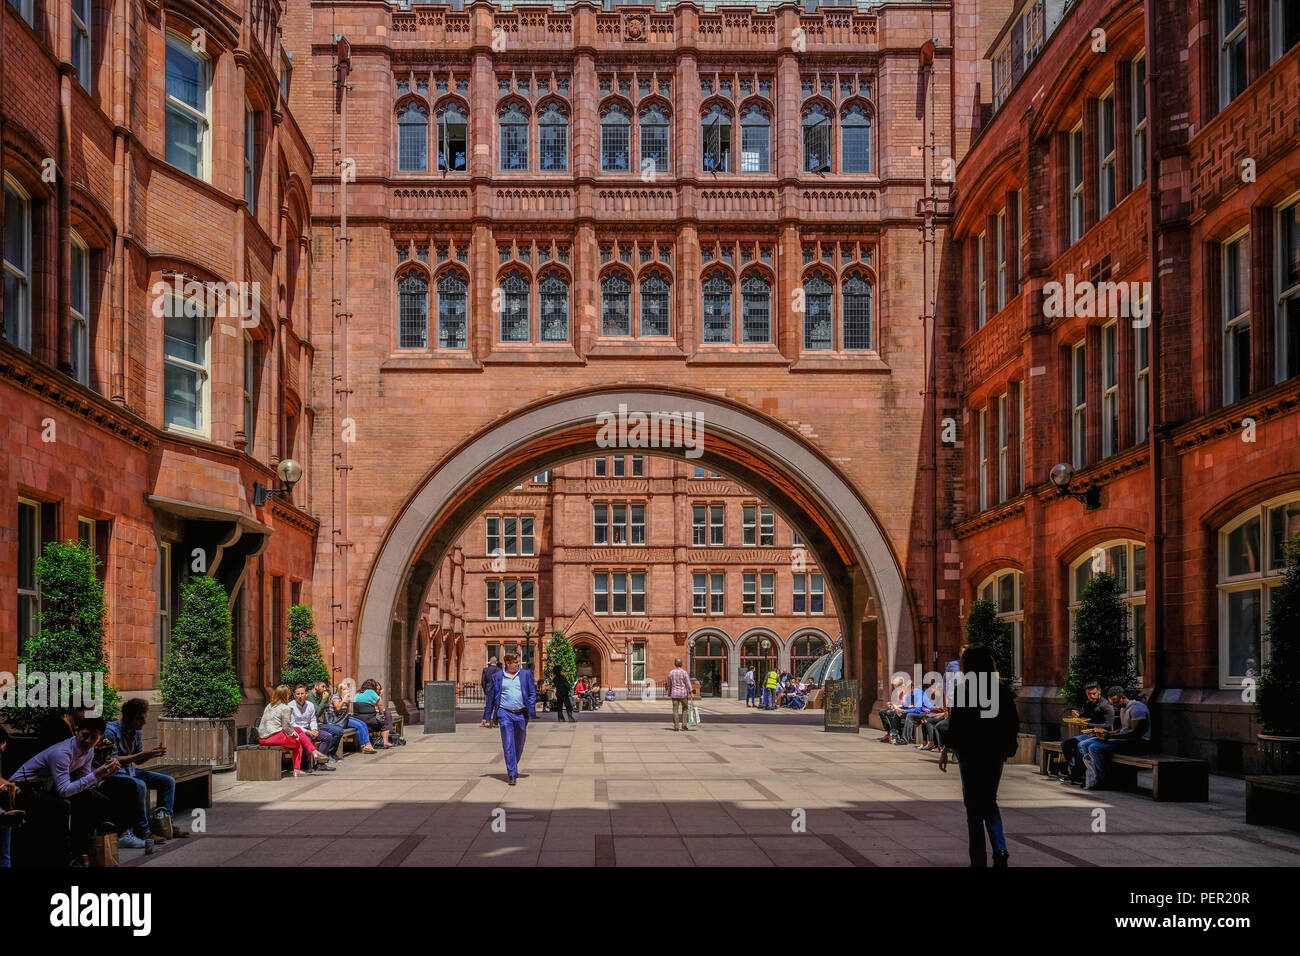 Holborn, London, UK - June 8, 2018: View of the inner courtyard of the Prudential Building in Holborn and shows people enjoying their break time on a  Stock Photo